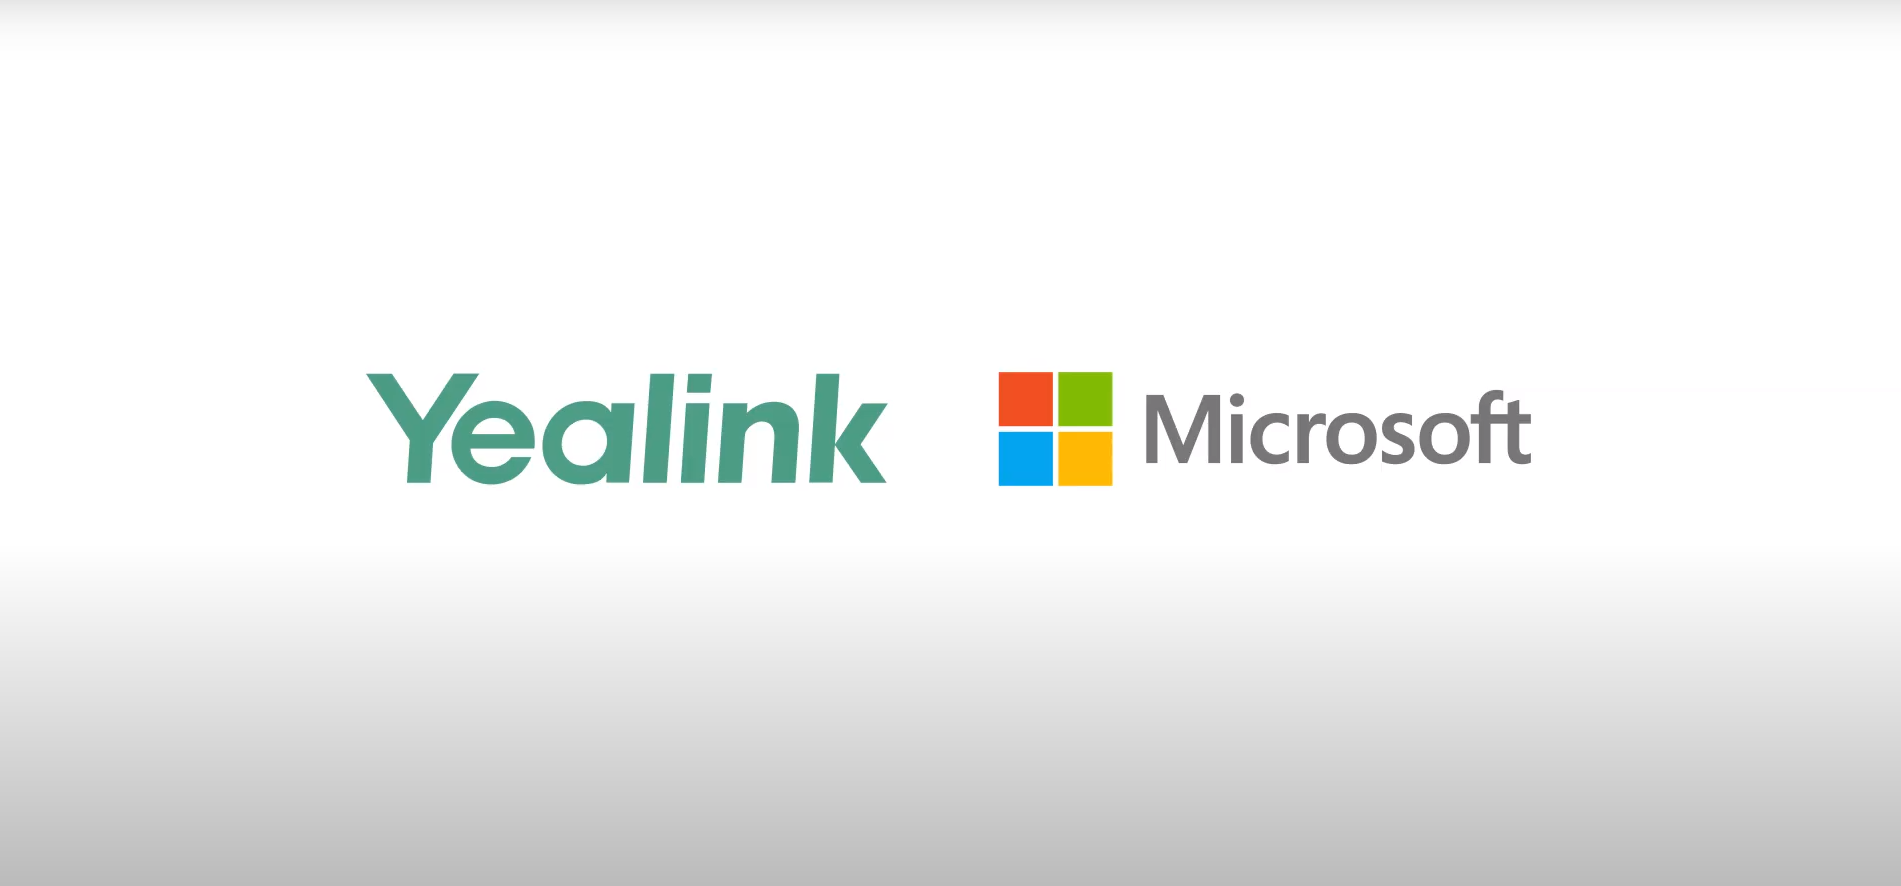 Yealink One-stop Full Scenario Device Solutions for Microsoft Teams